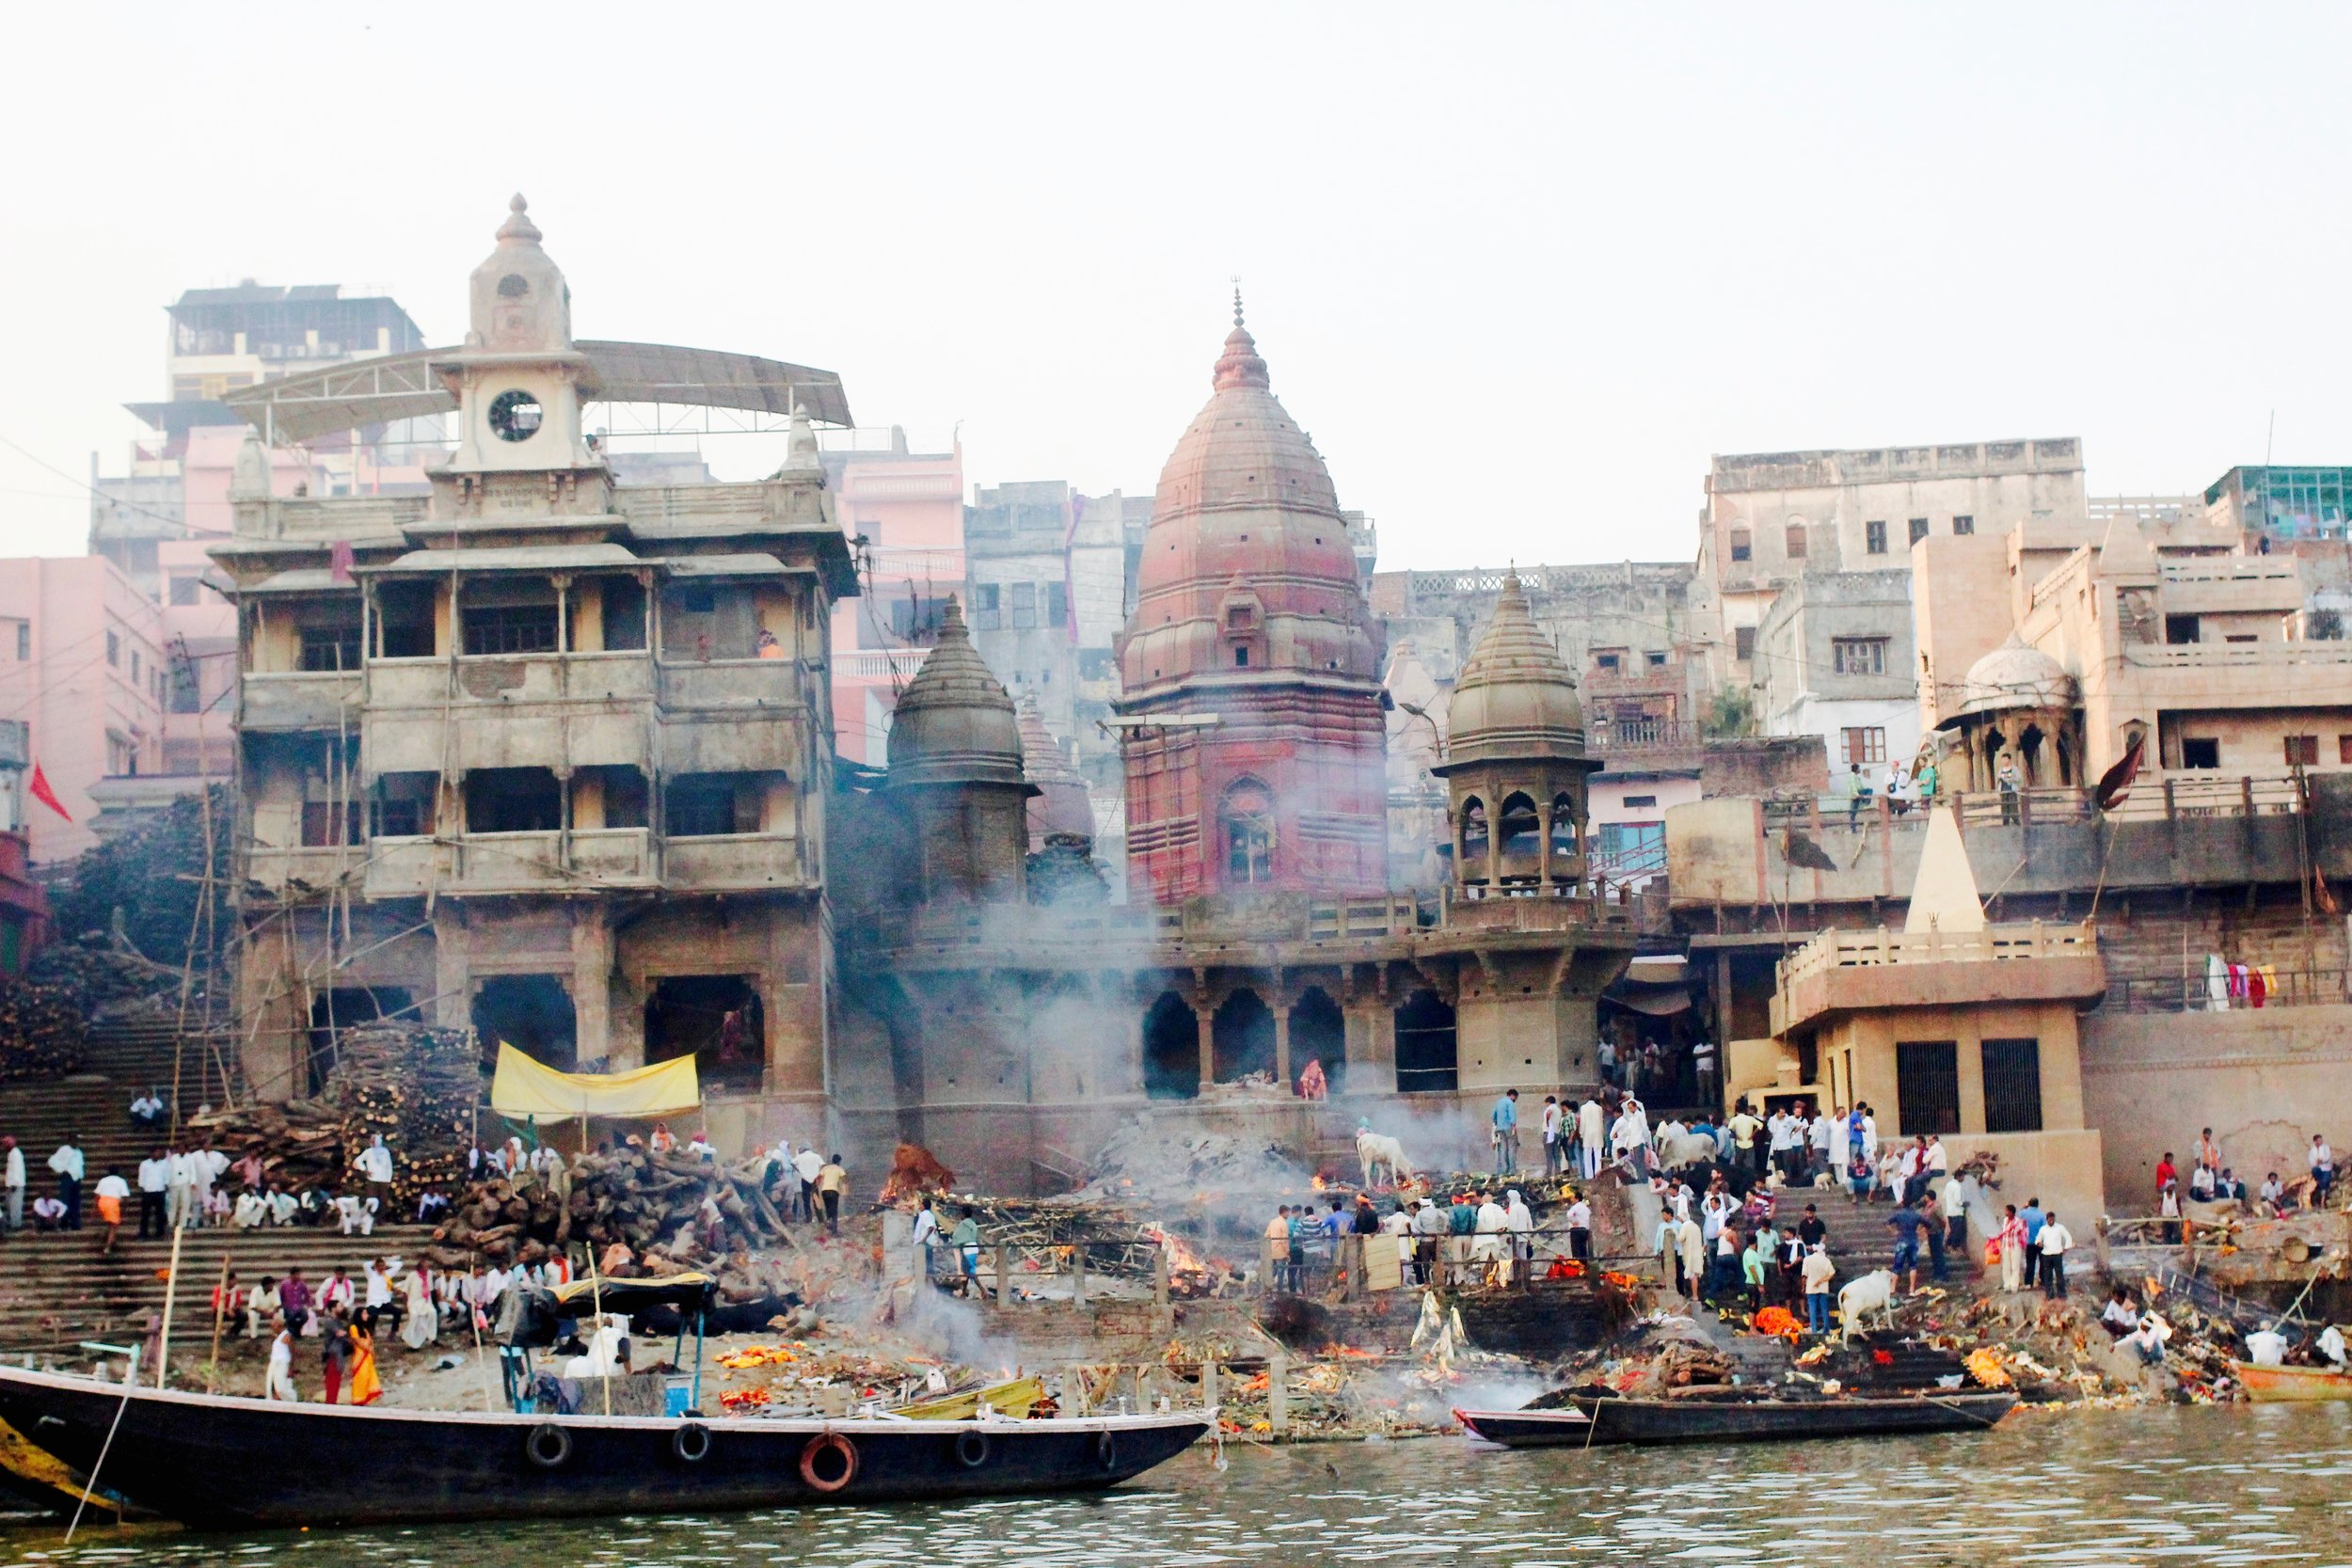 The biggest ghat in Varanasi burns 200-300 bodies a day.